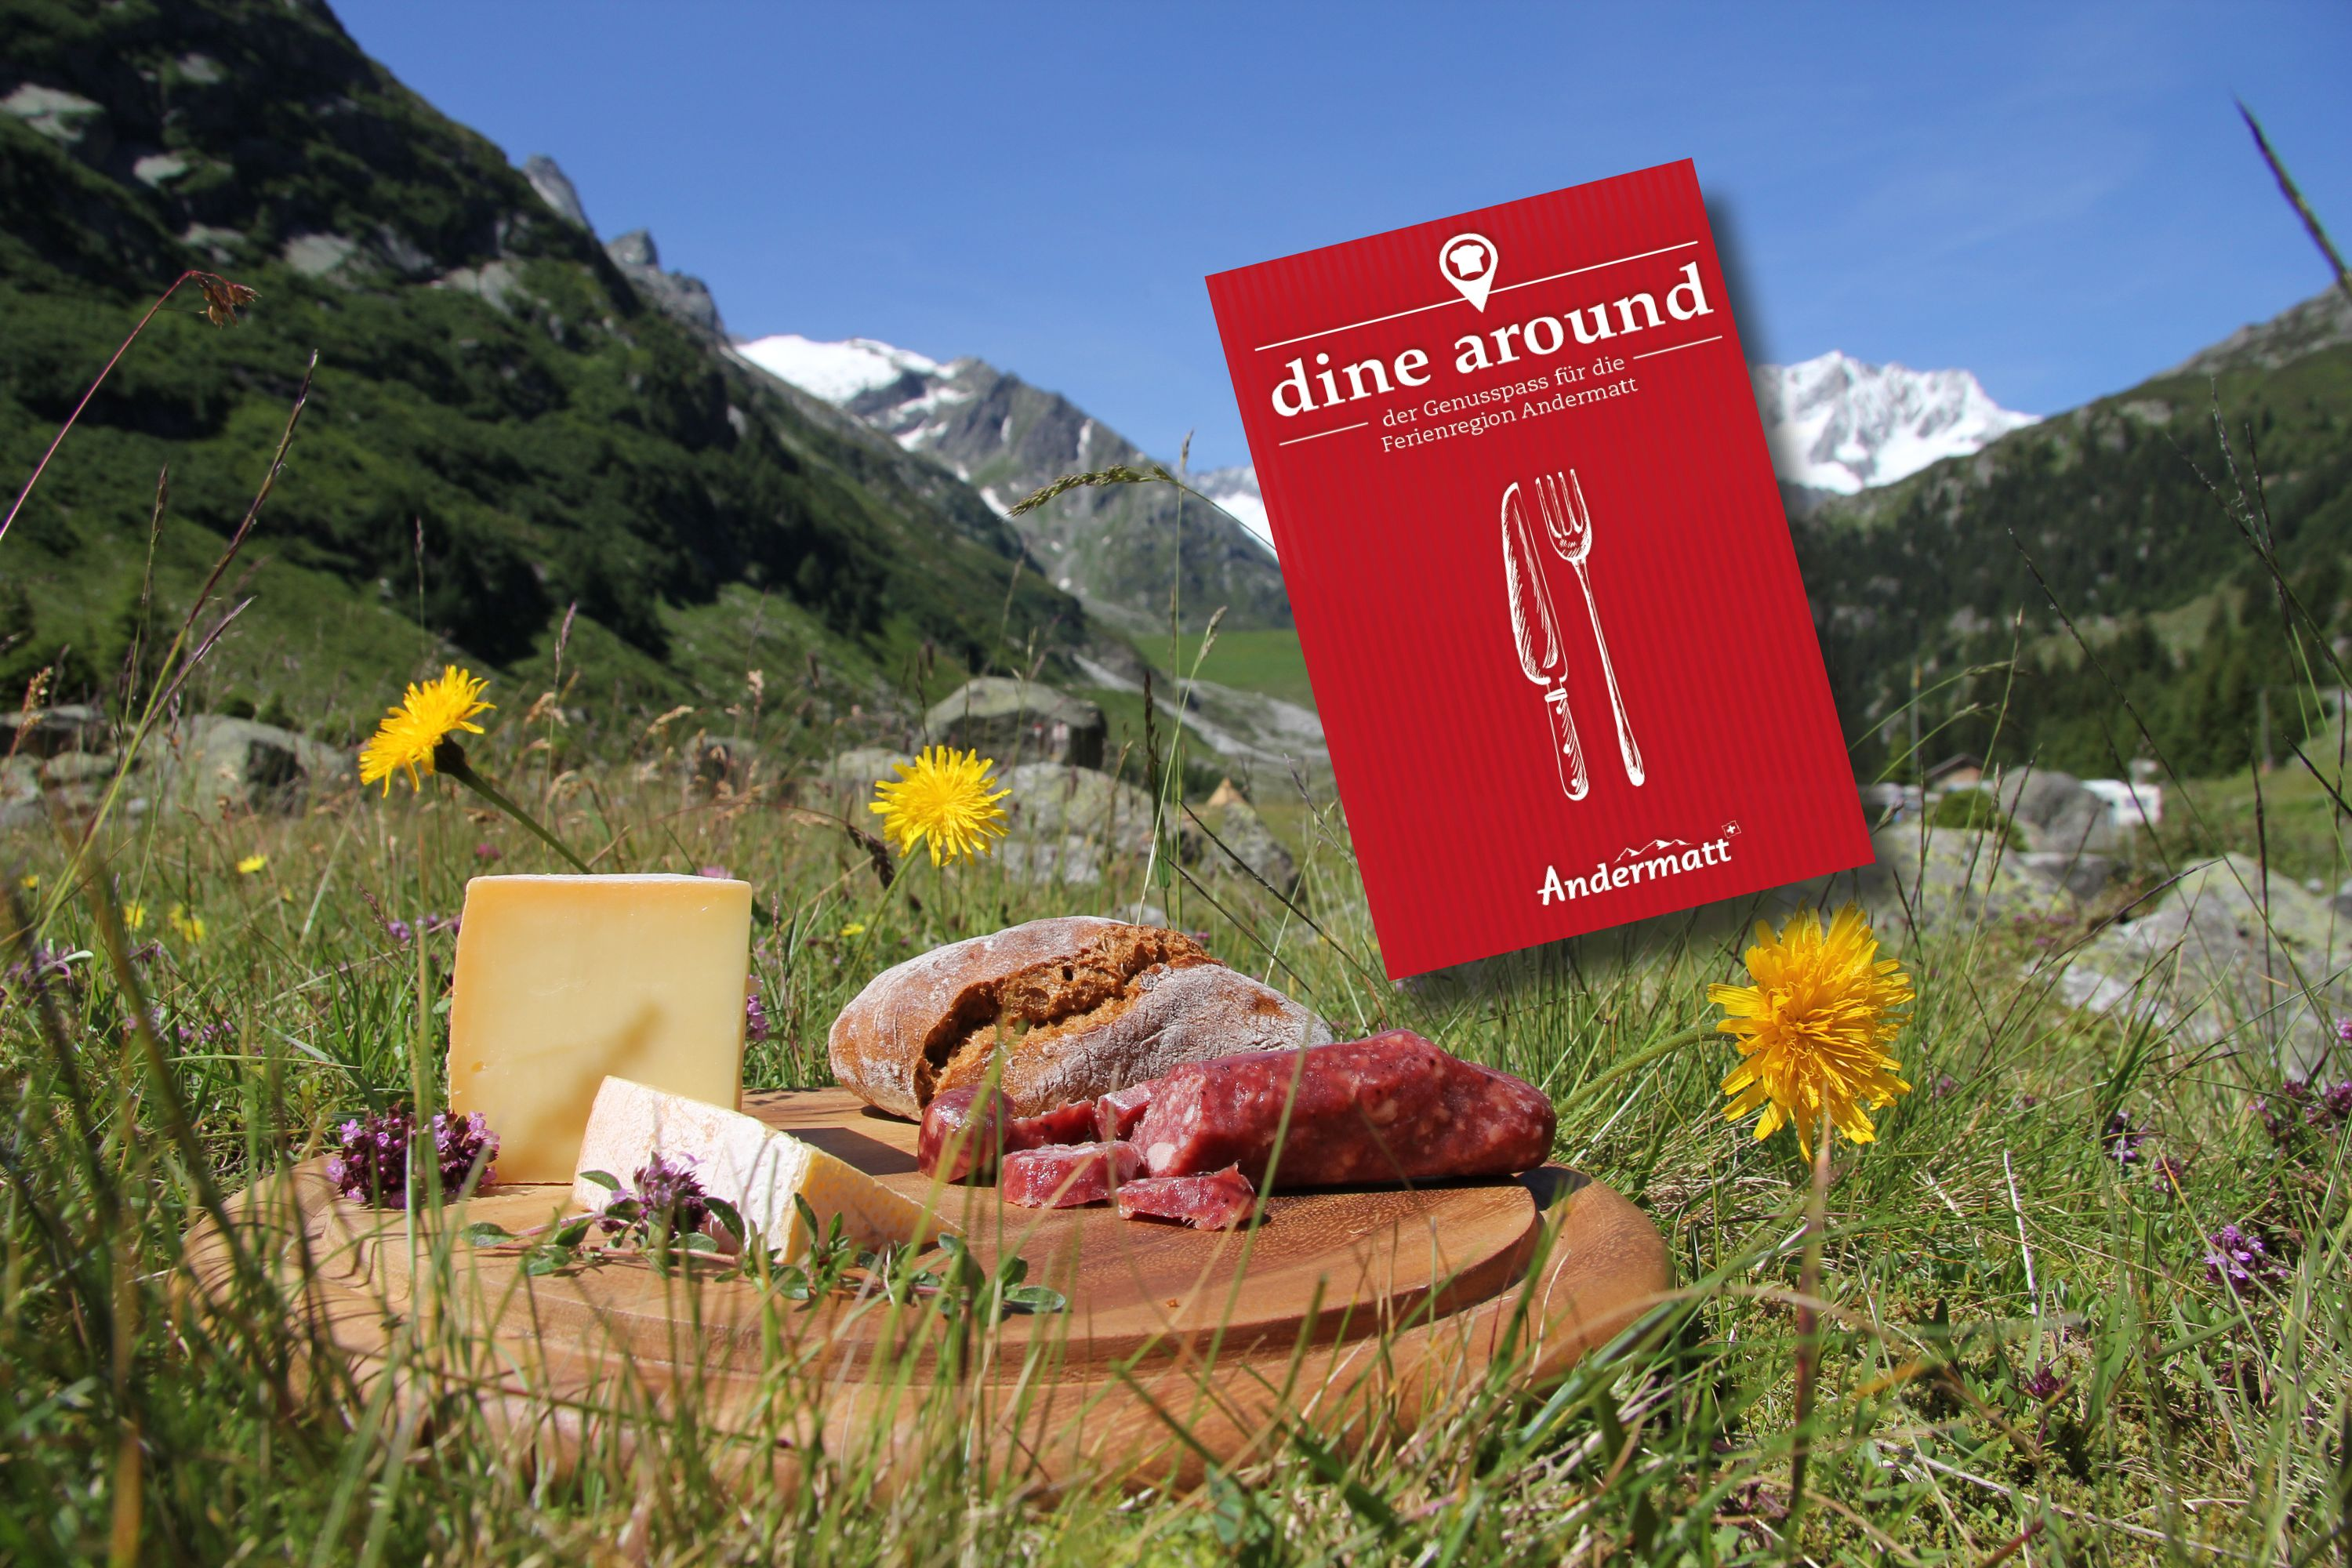 Angebot-Dine around-Genusspass